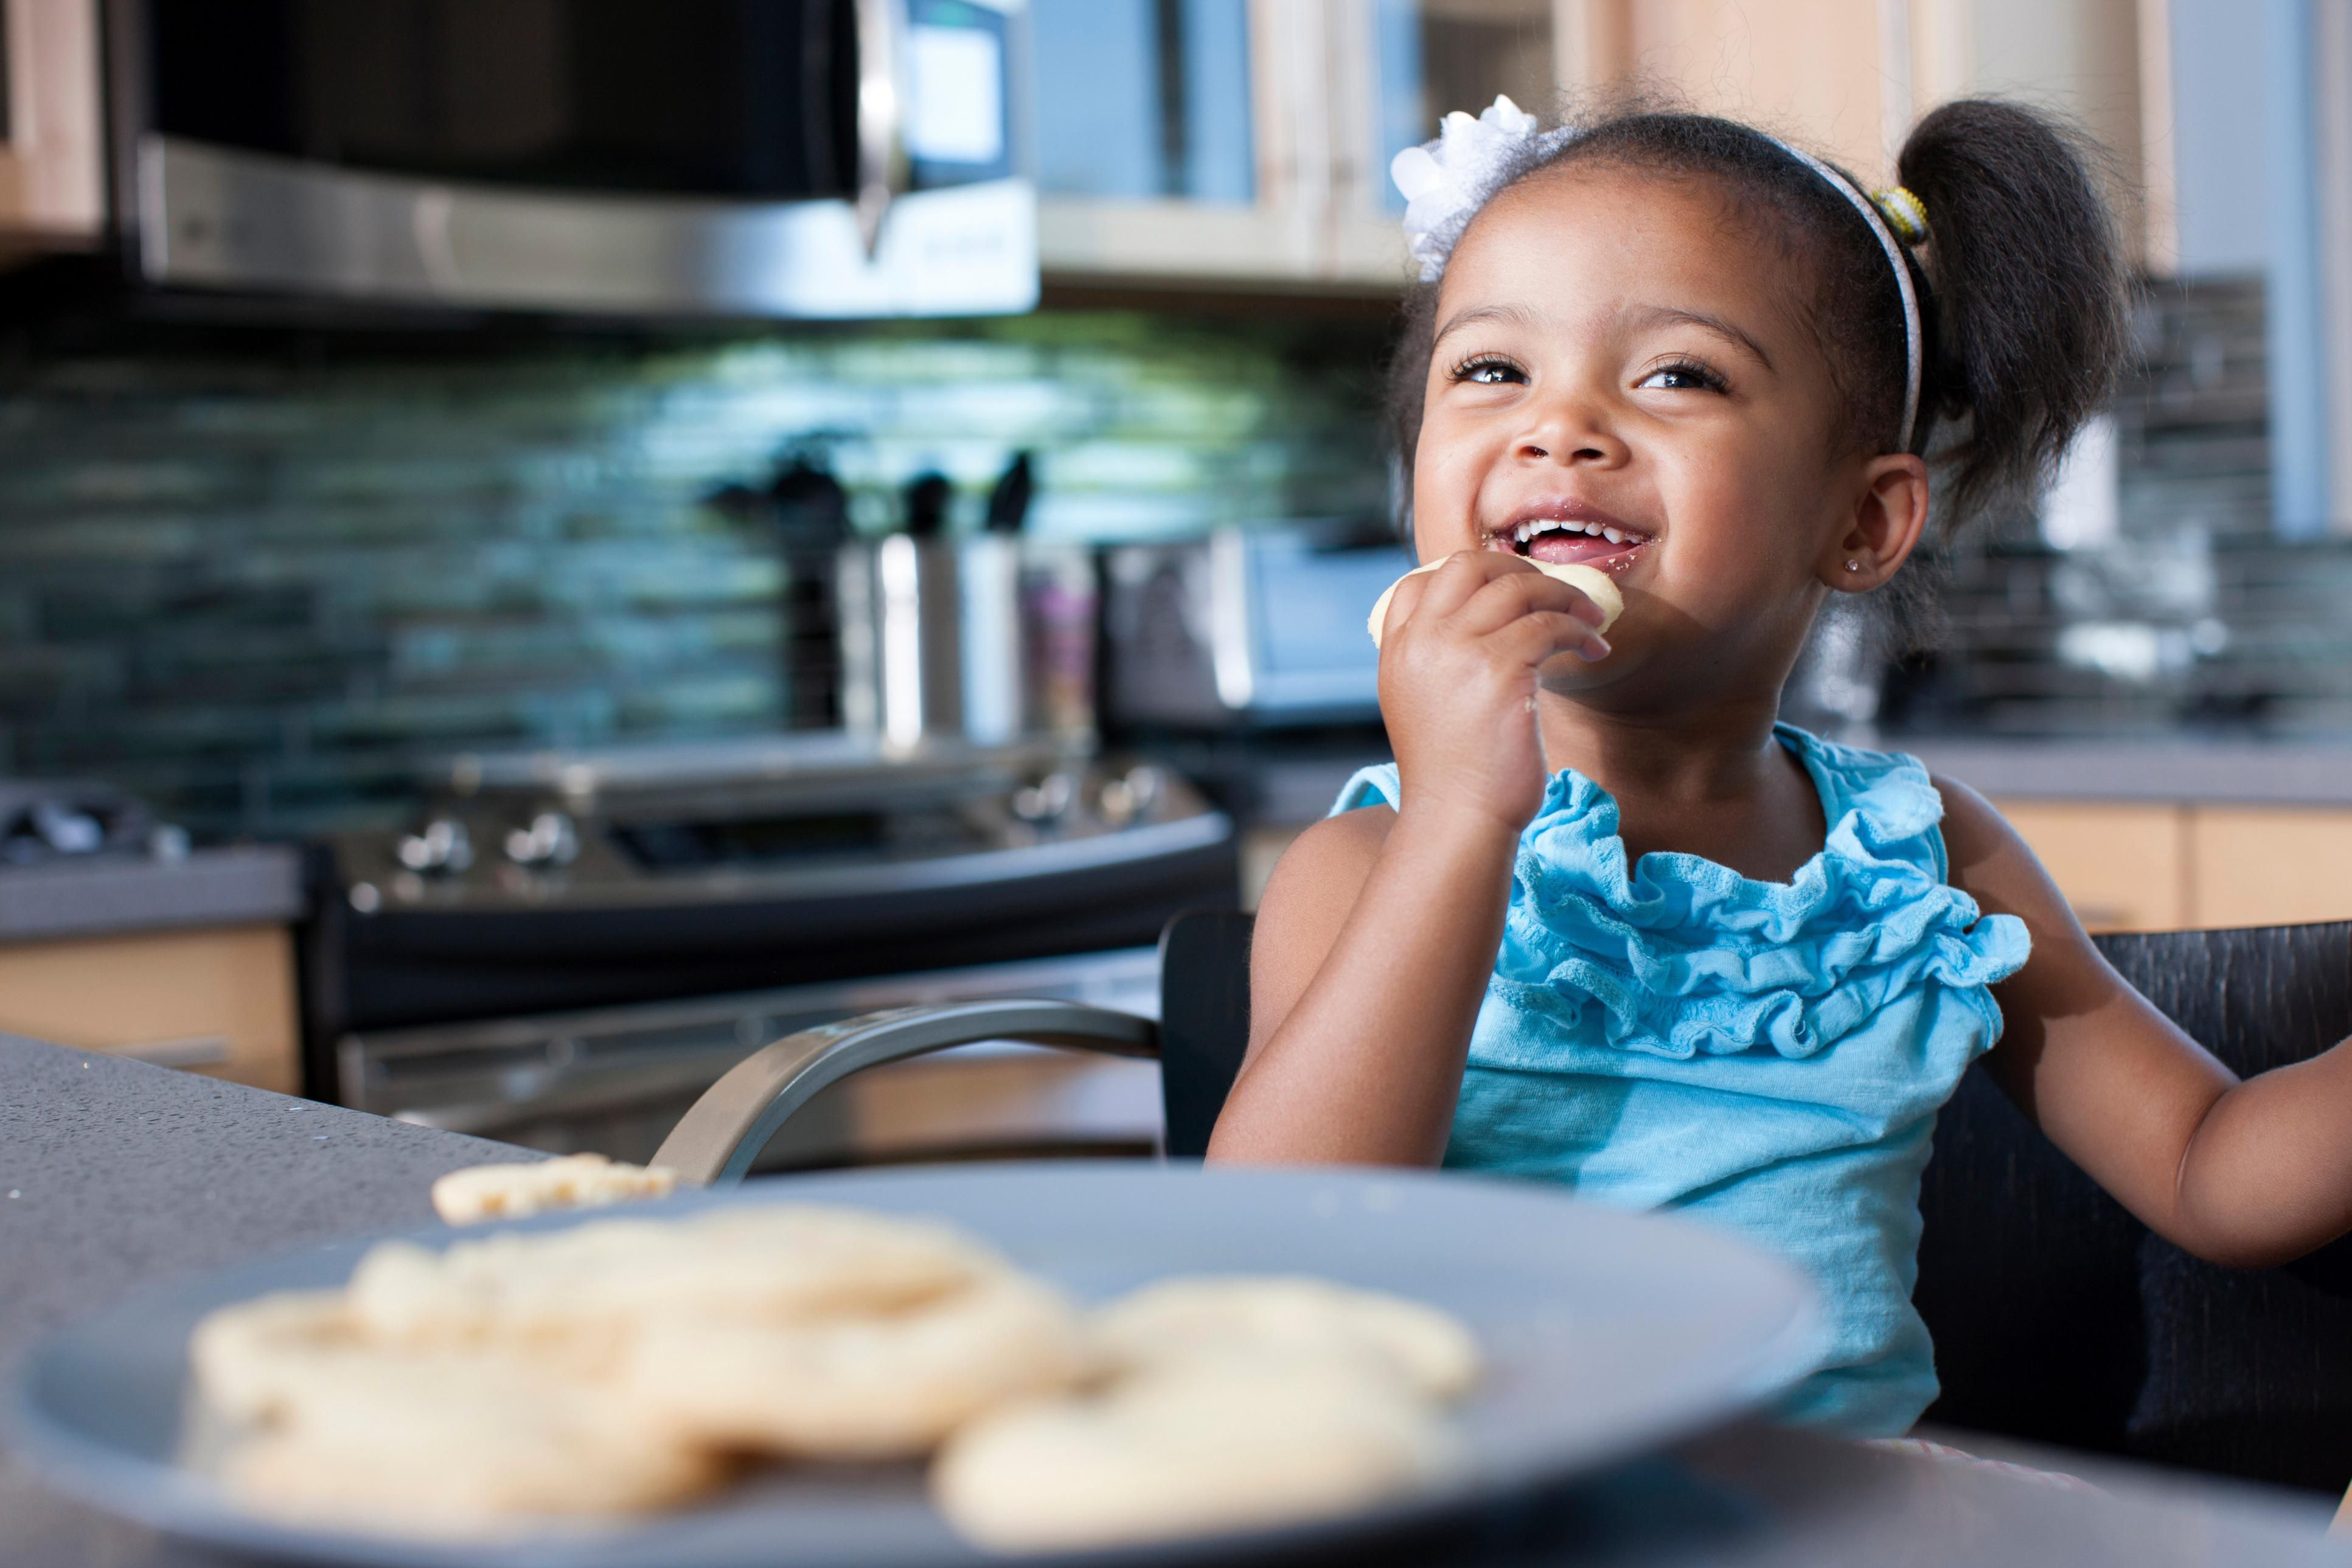 Table Manners For Preschoolers Tips On Teaching